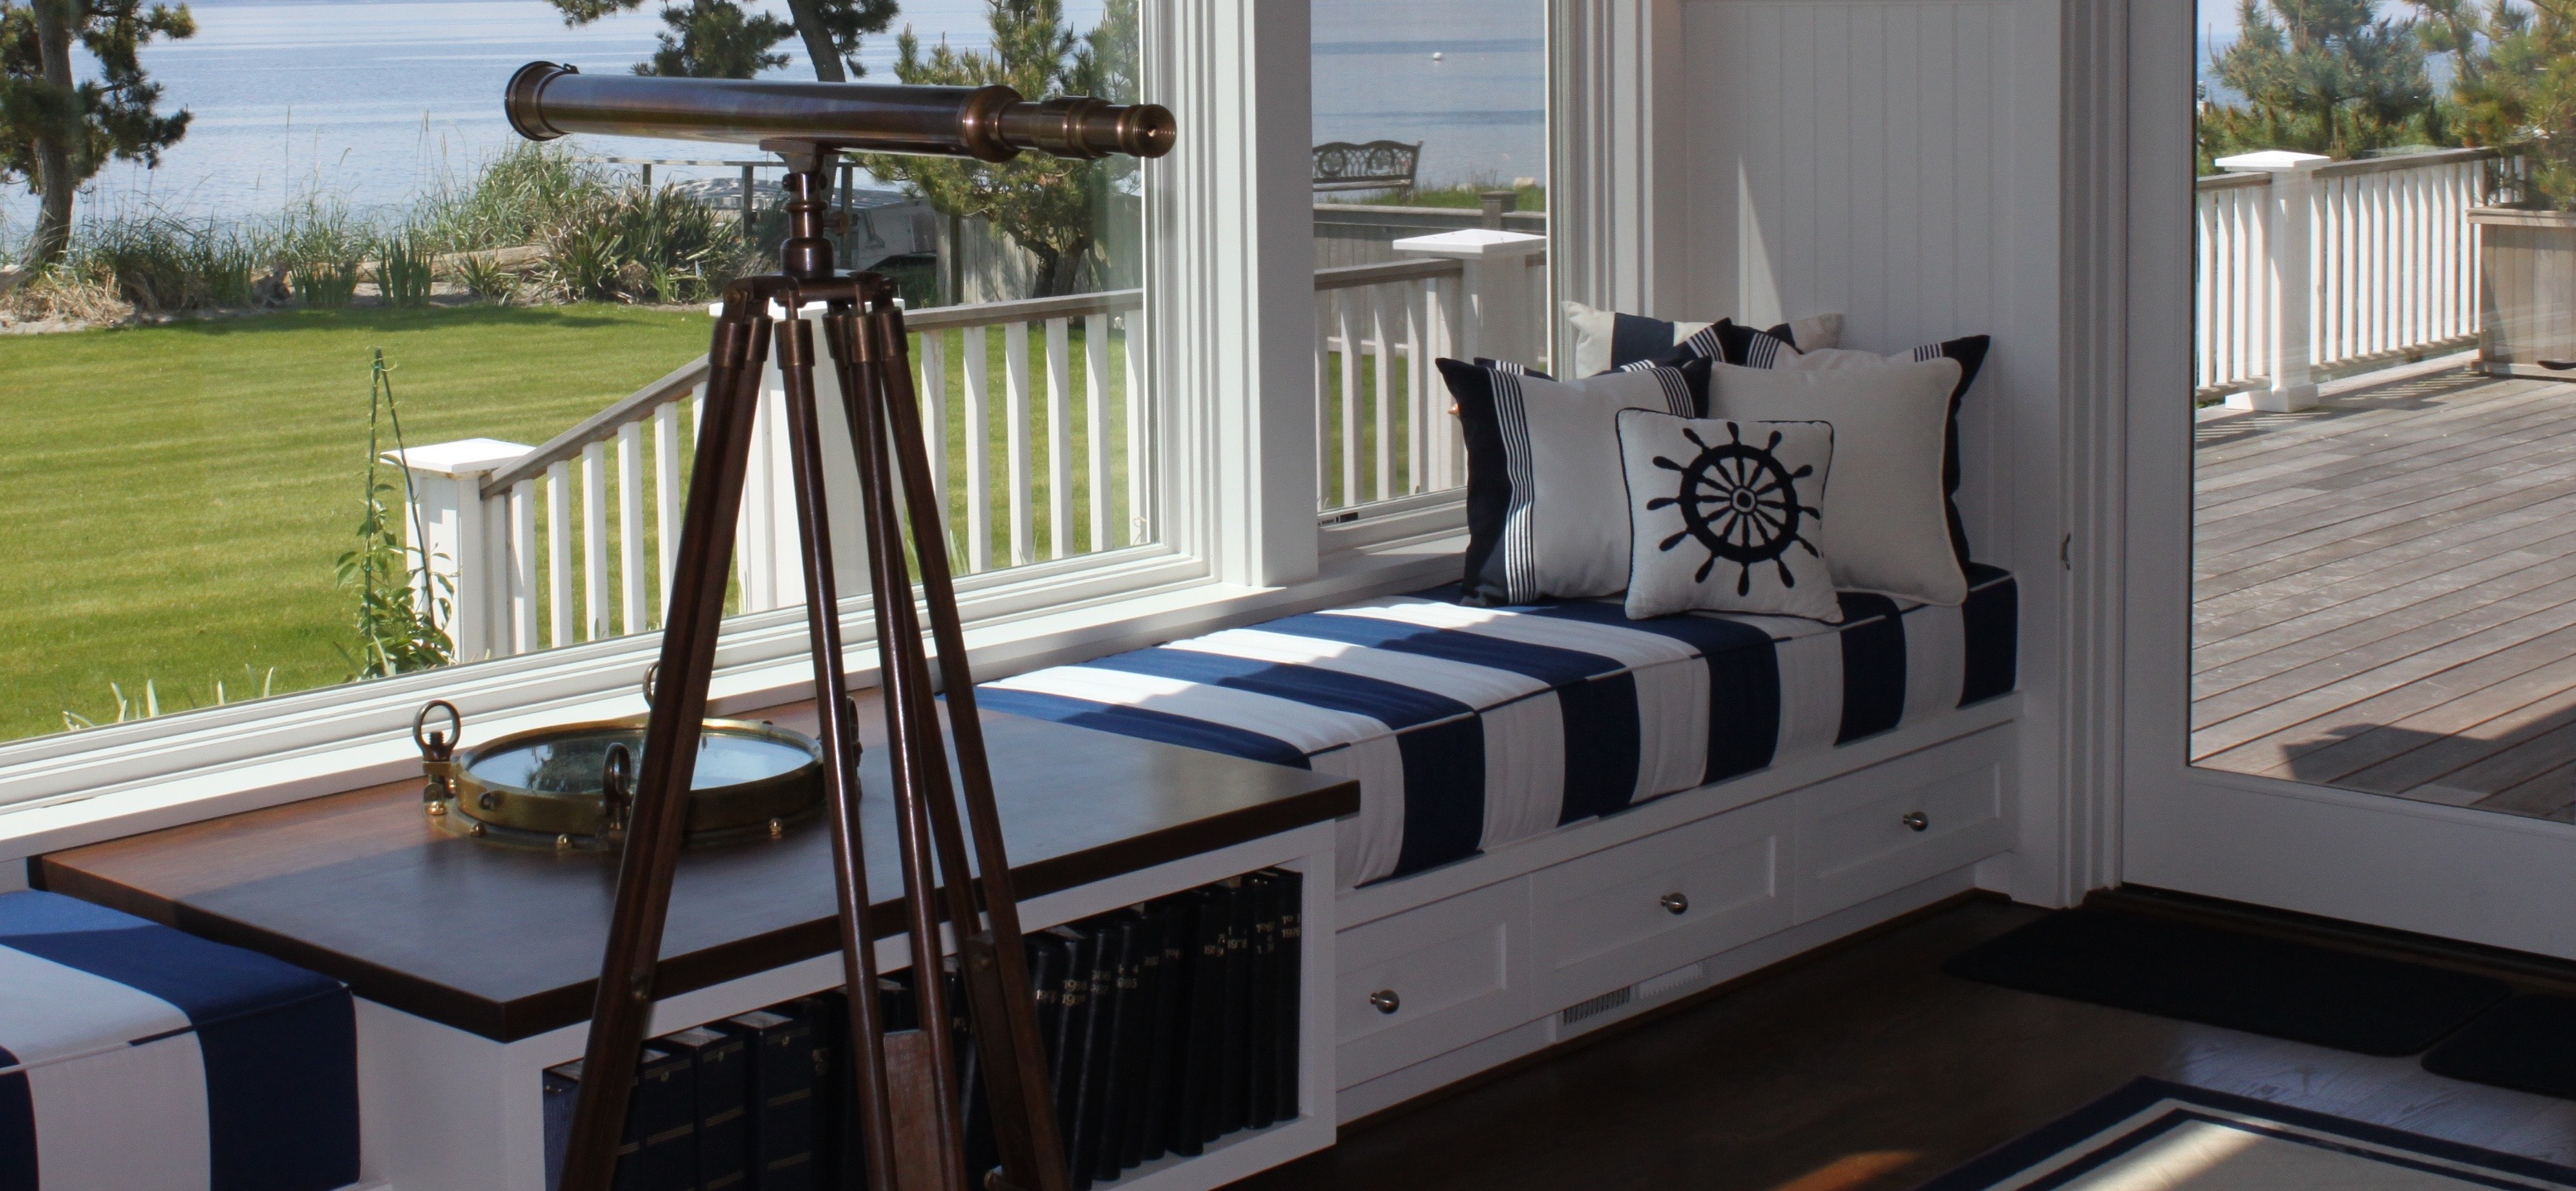 5 Interior Design u0026 Decorating Tips for Creating a Nautical Theme : nautical interior design - zebratimes.com